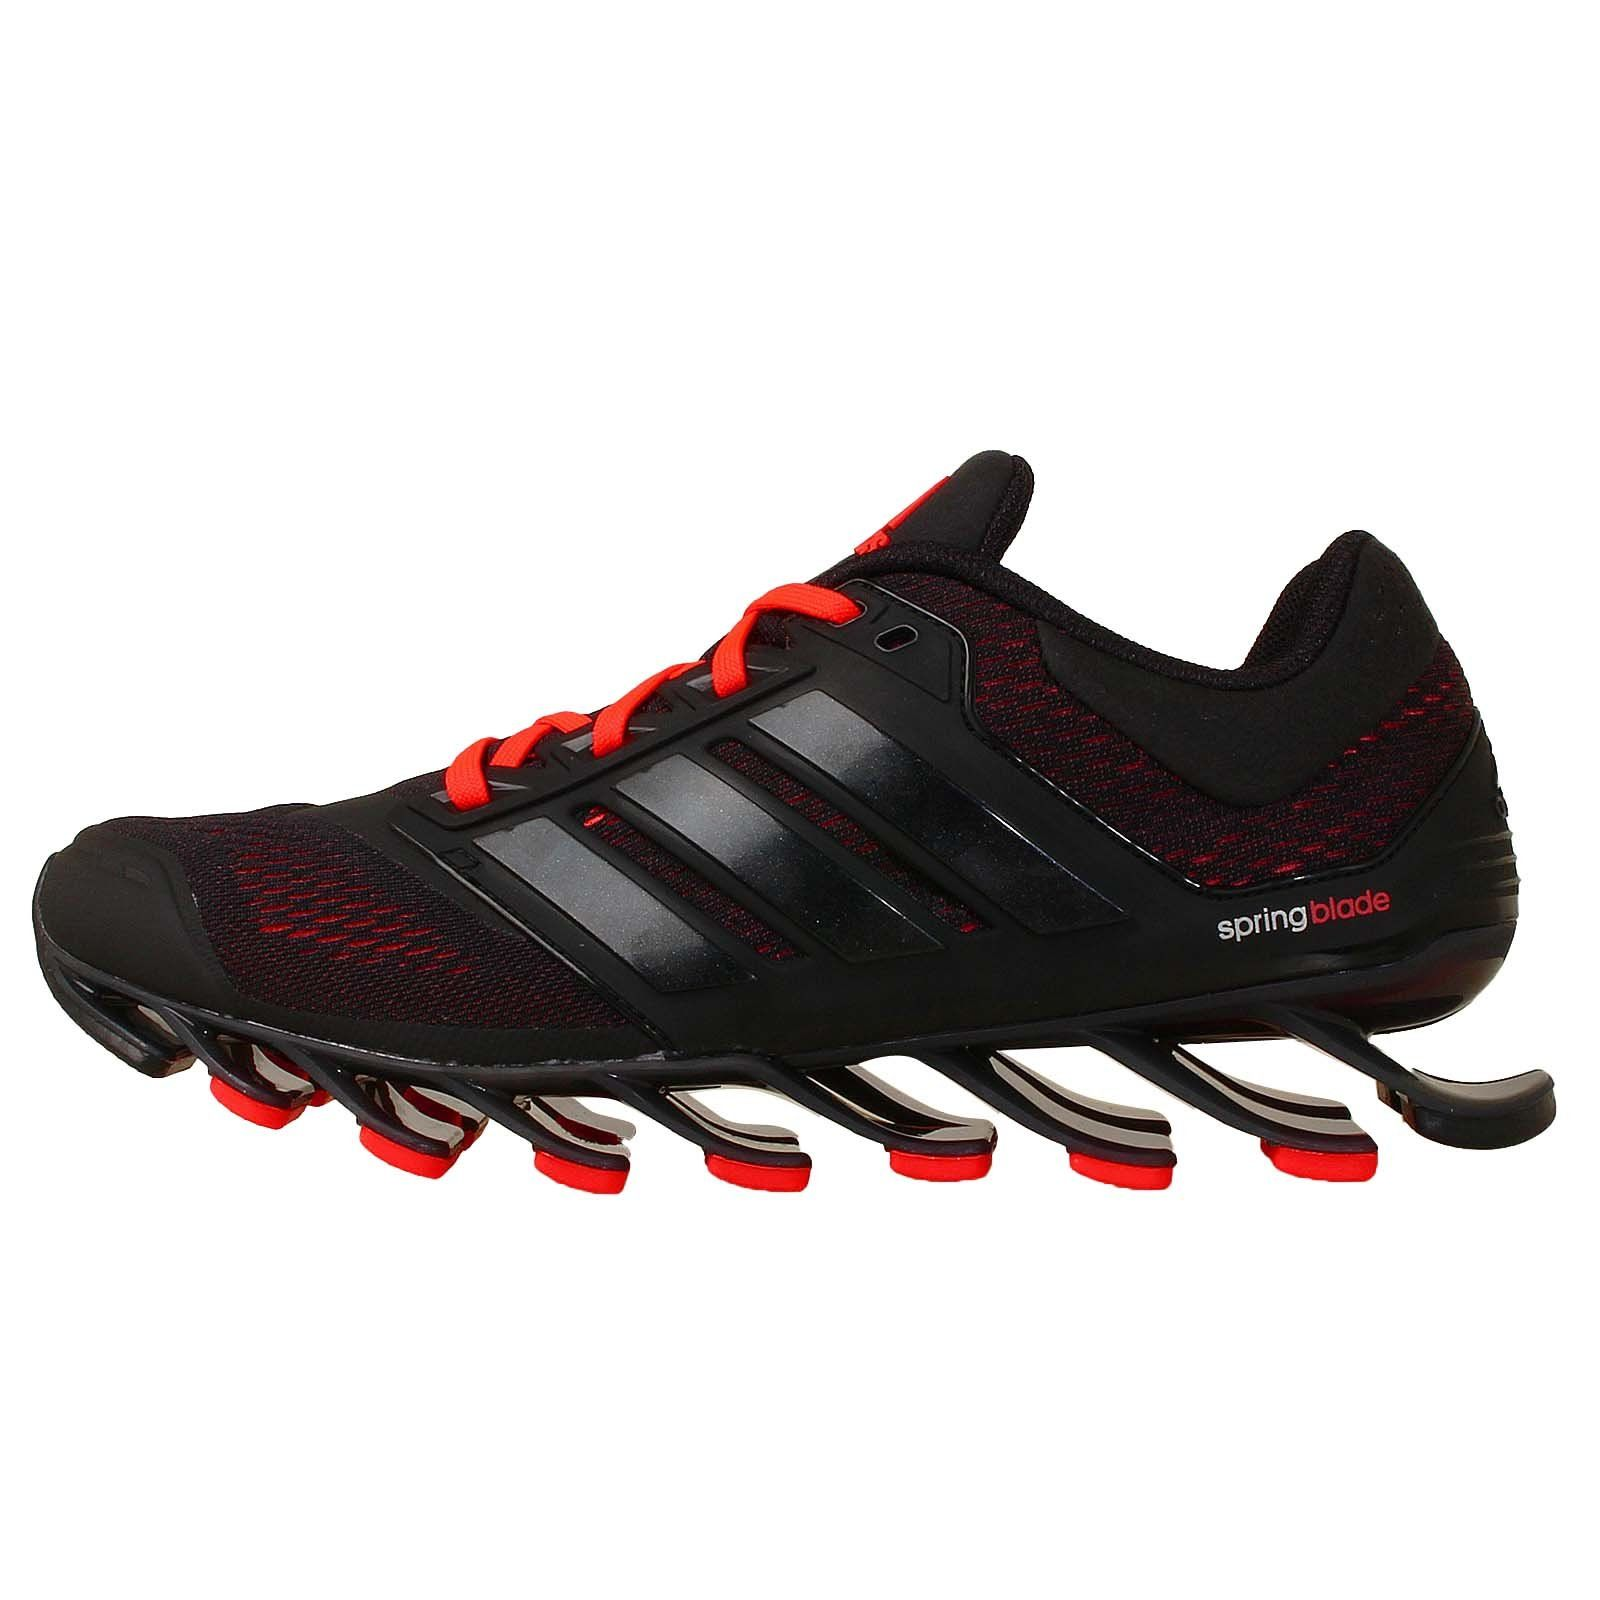 dc1d4ed41b7 Amazon.com  adidas Performance Men s Springblade Drive M Running Shoe  Shoes